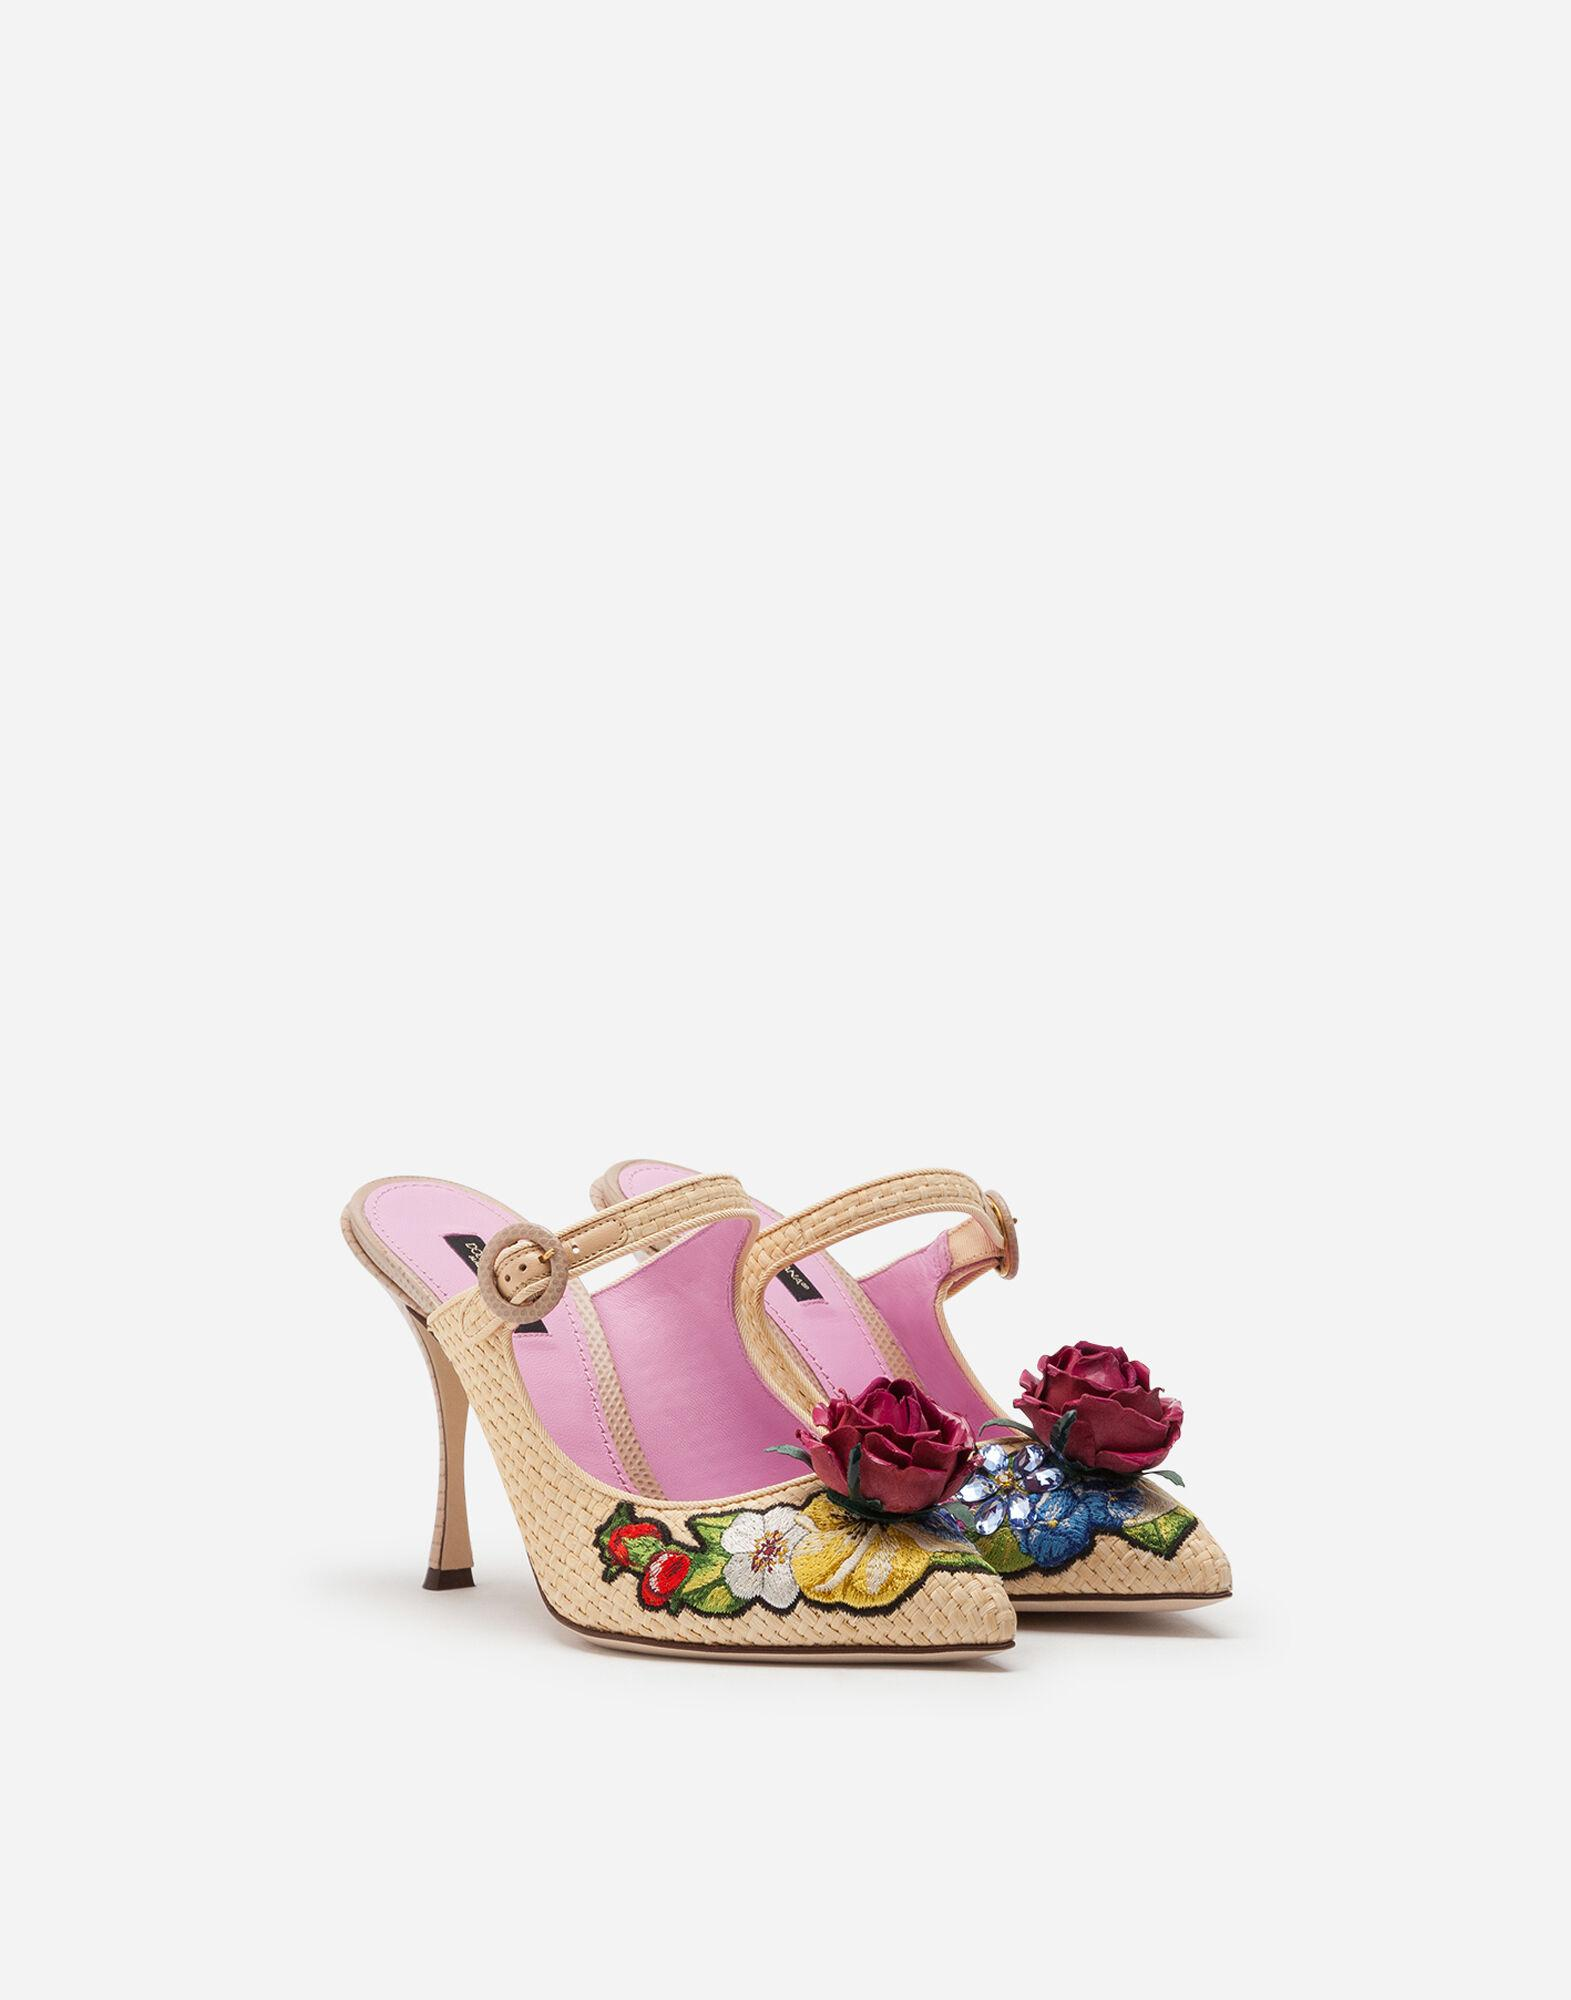 Braided raffia mules with floral embroidery 1